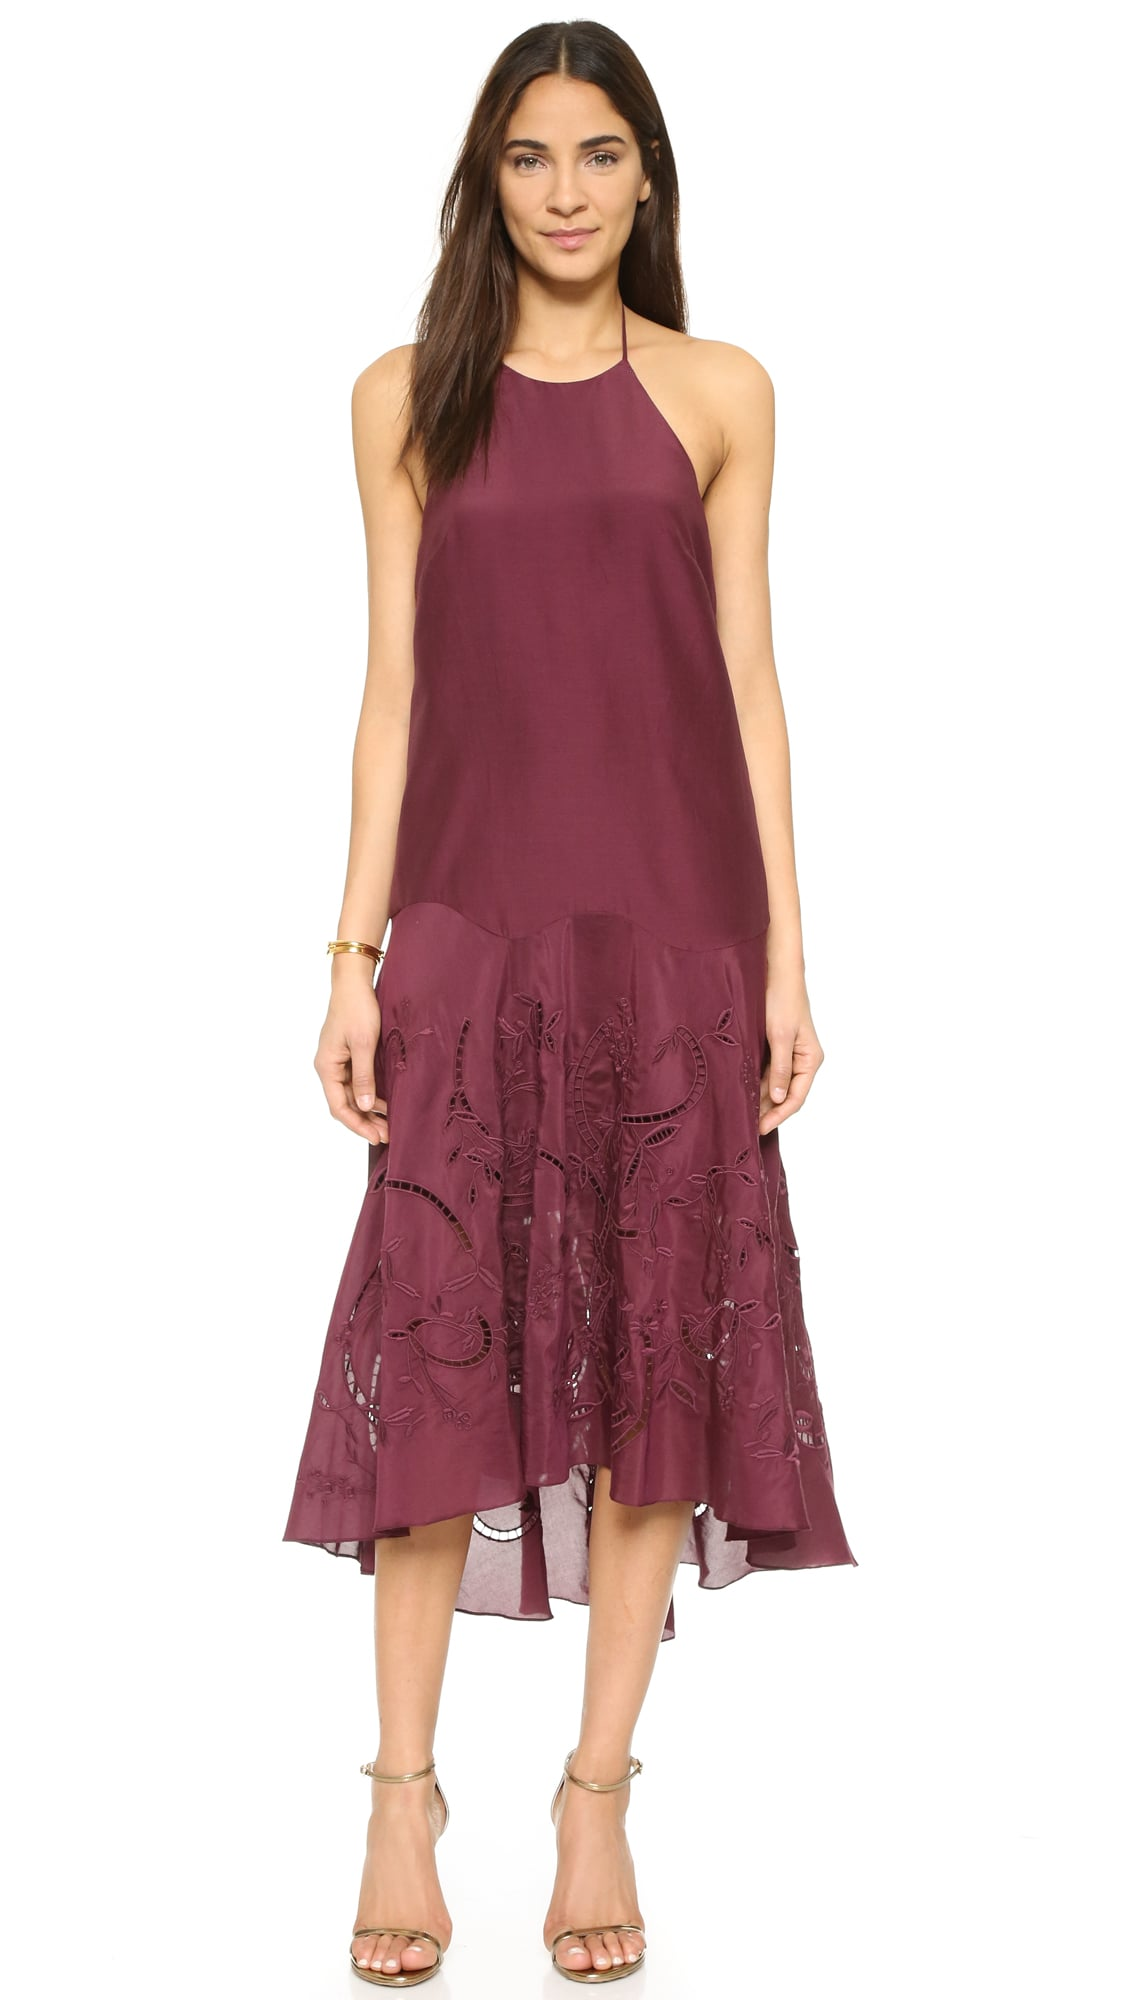 Sagittarius A Perfectly Stylish Wedding Guest Dress To Match Your